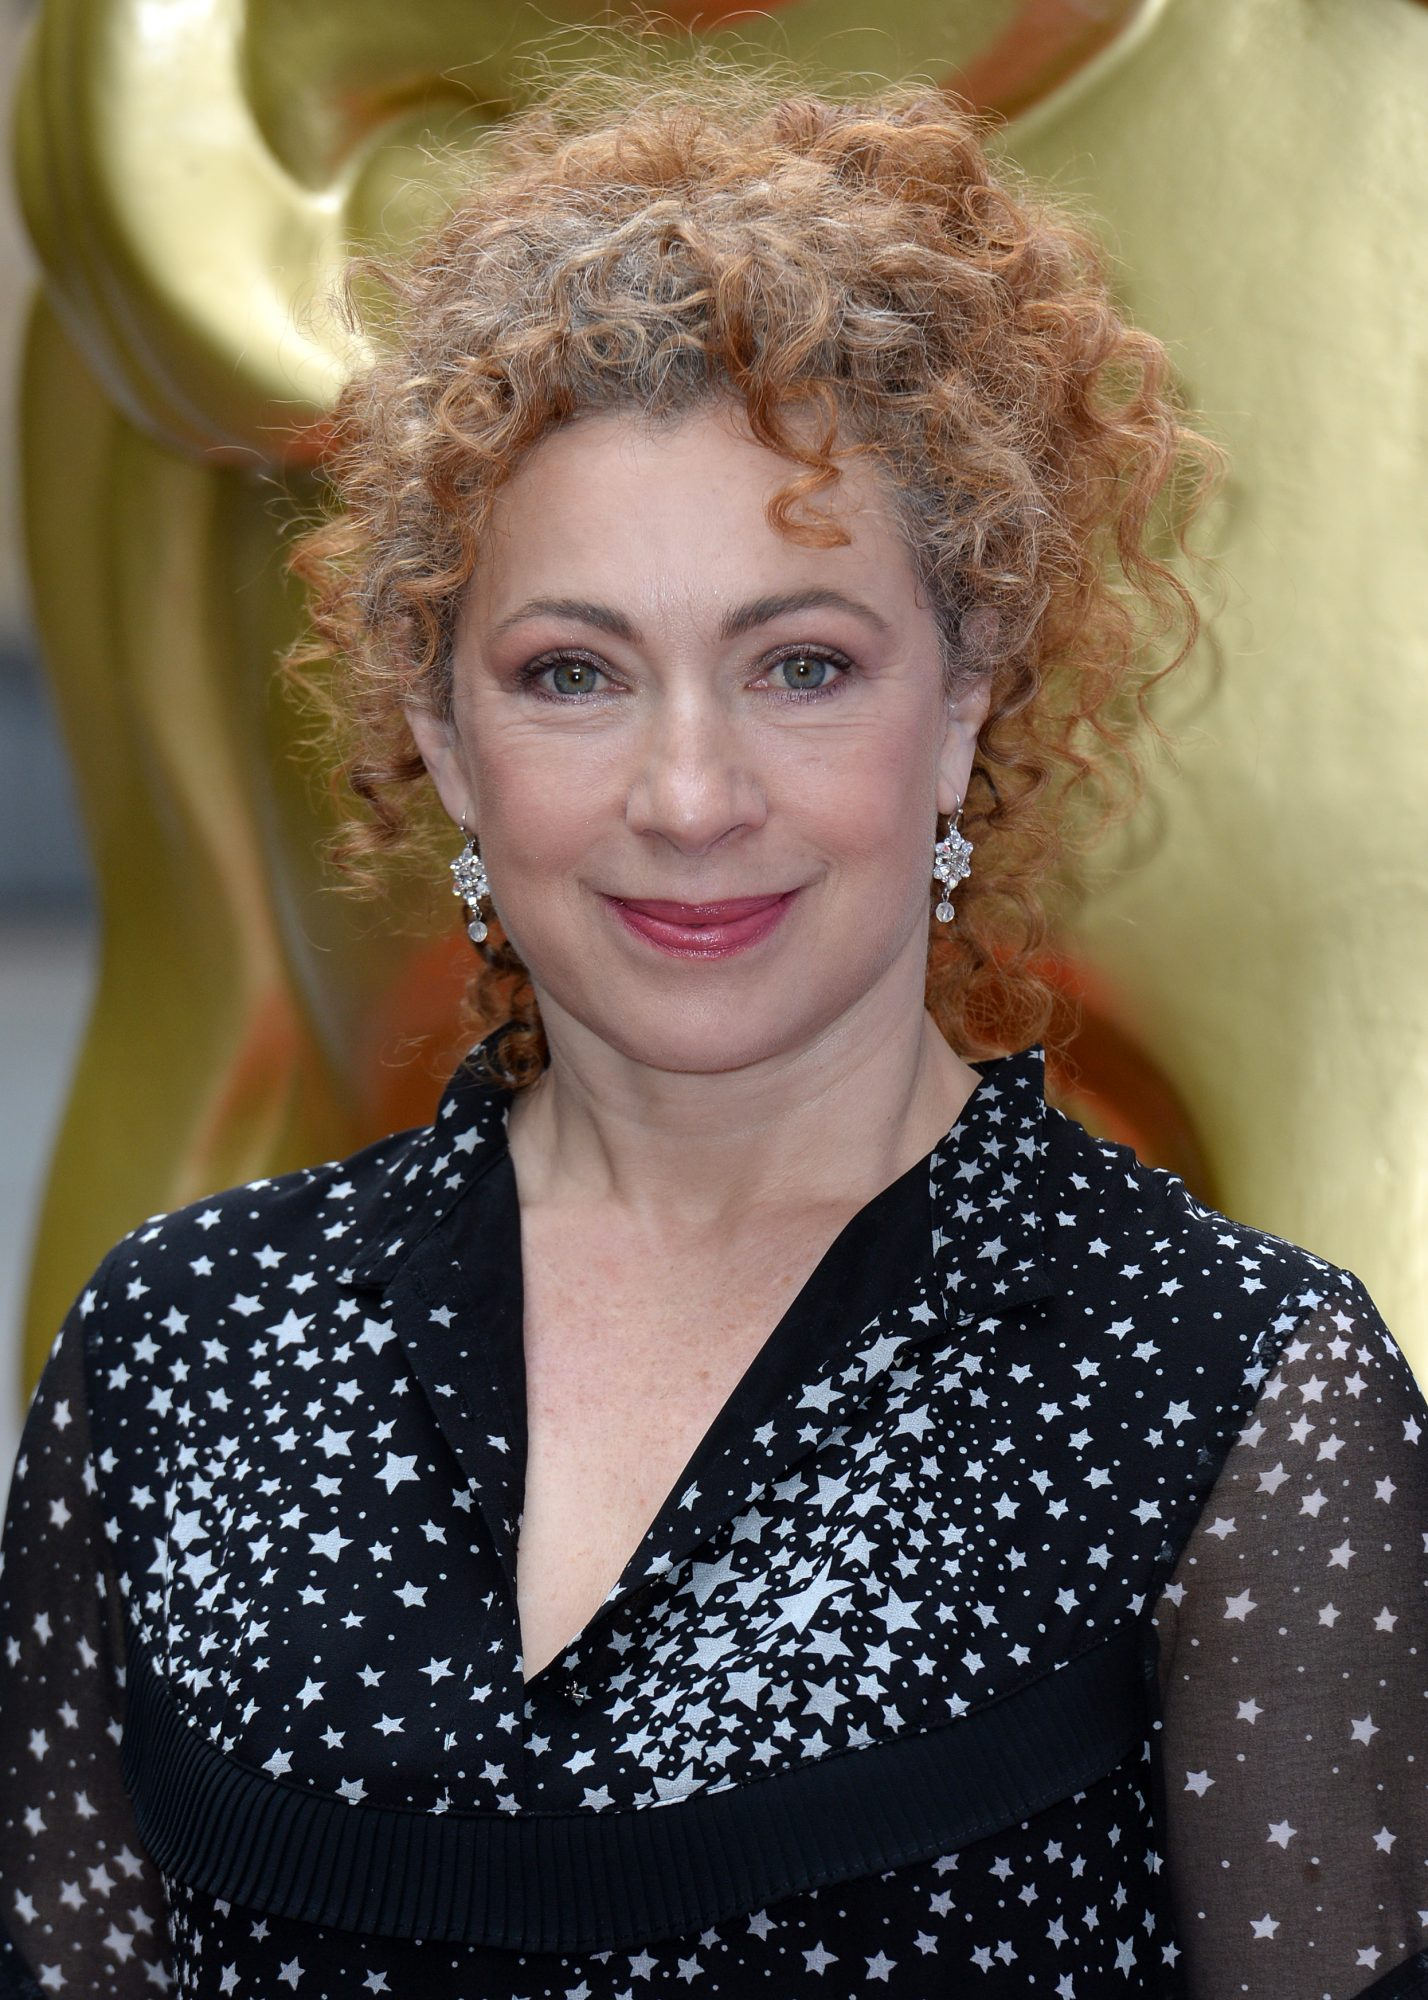 LONDON, ENGLAND - APRIL 28: Alex Kingston attends the British Academy Television Craft Awards at The Brewery on April 28, 2019 in London, England. (Photo by Eamonn M. McCormack/Getty Images)